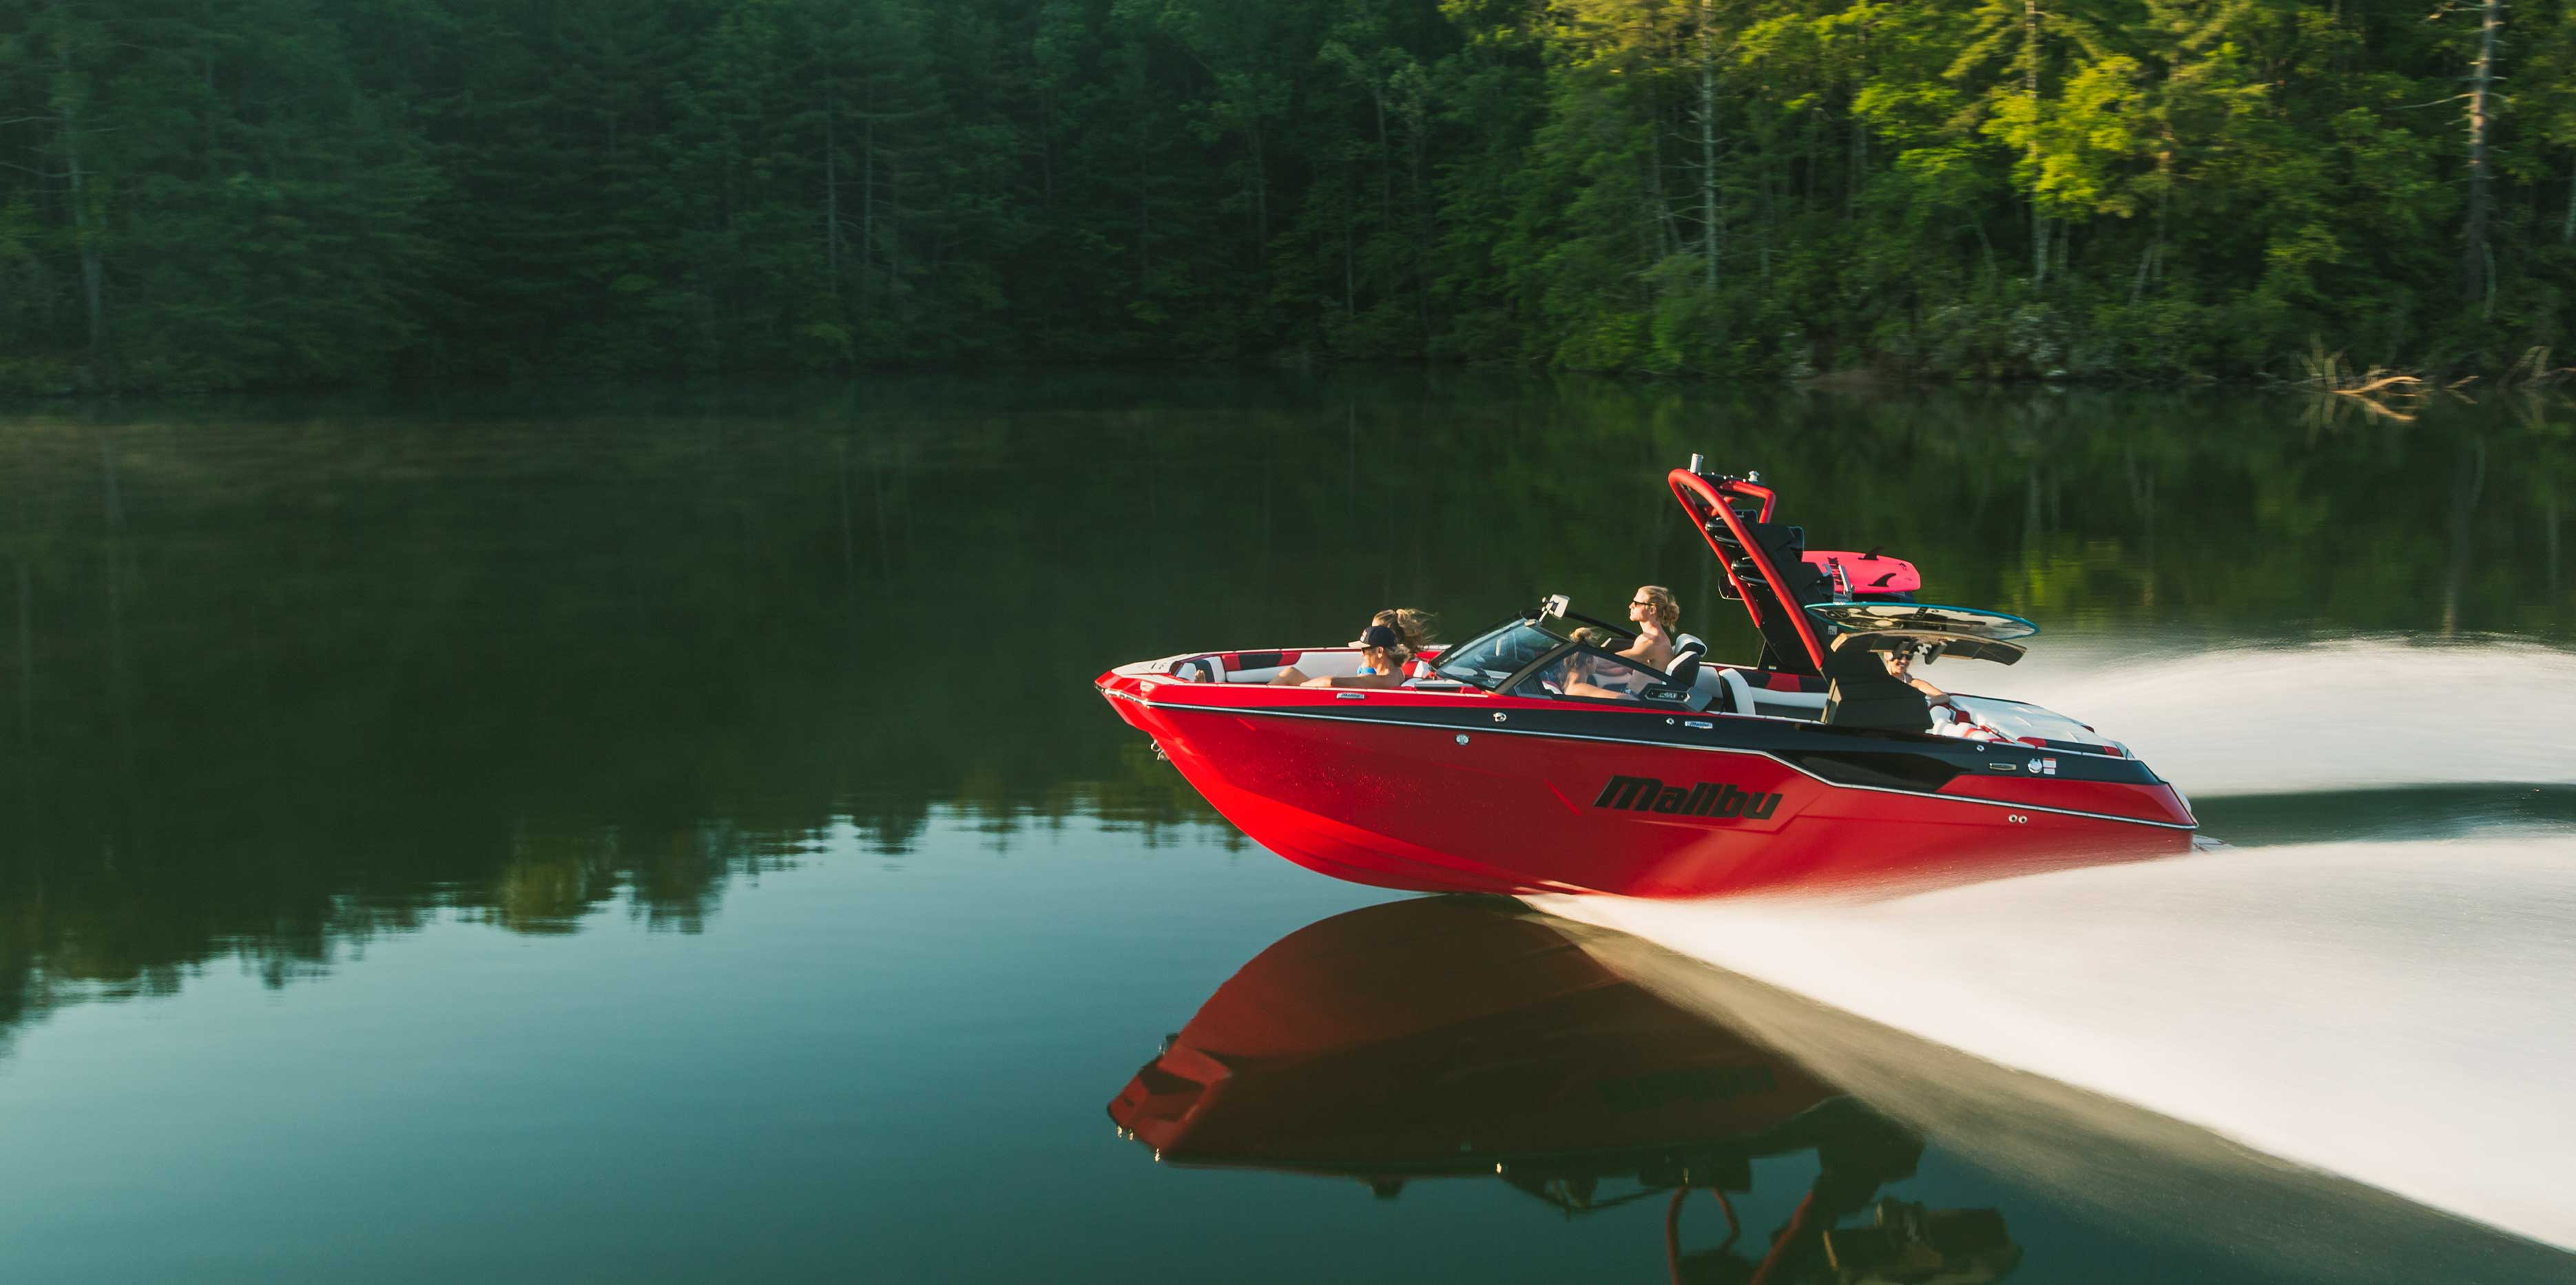 The 2021 Malibu Boats All-New M220 Running